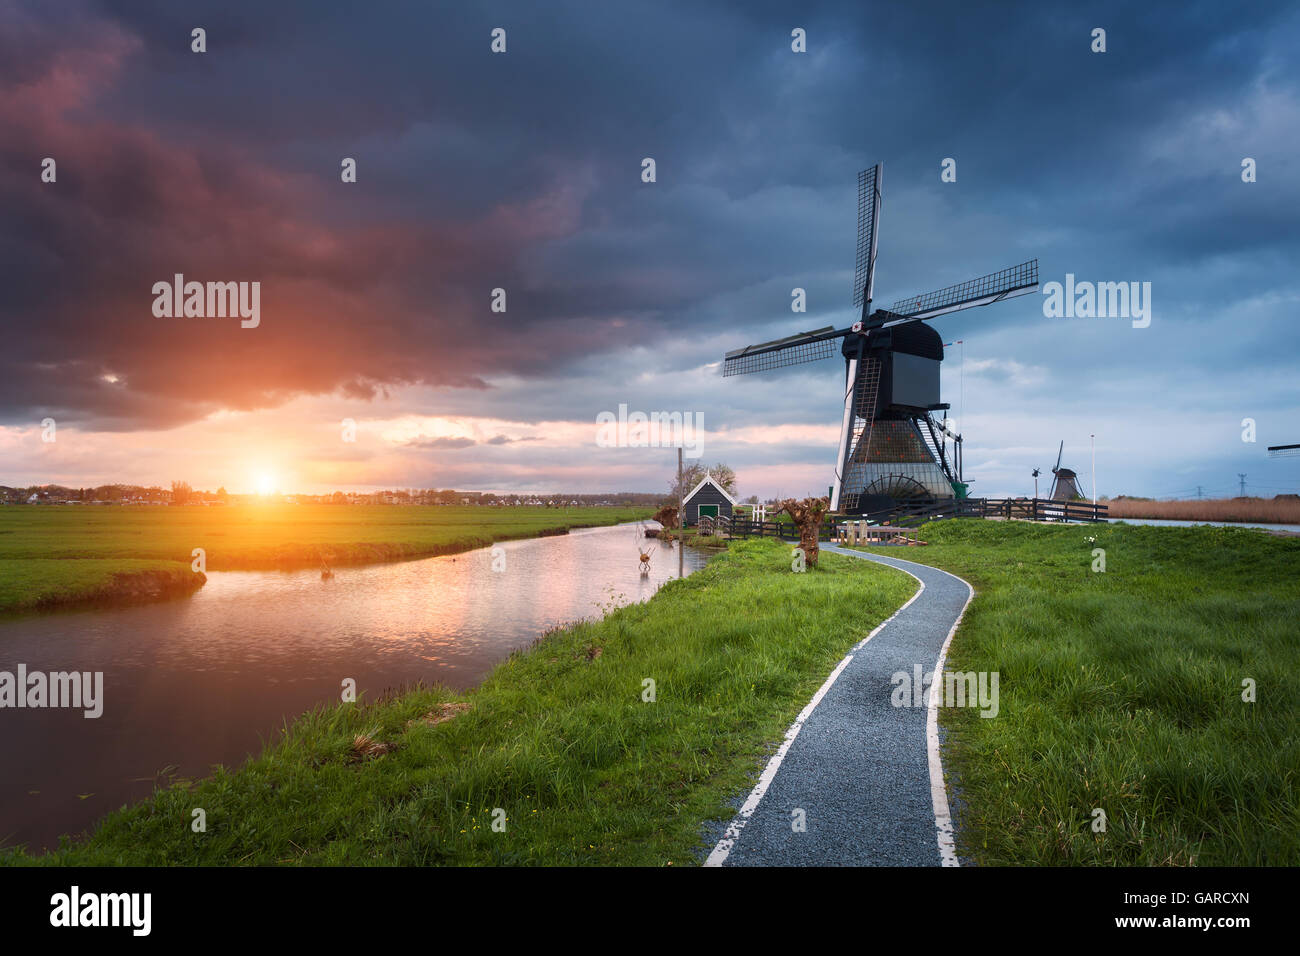 Landscape with traditional dutch windmills and path near the water canals. Clouds at colorful sunset in spring. - Stock Image